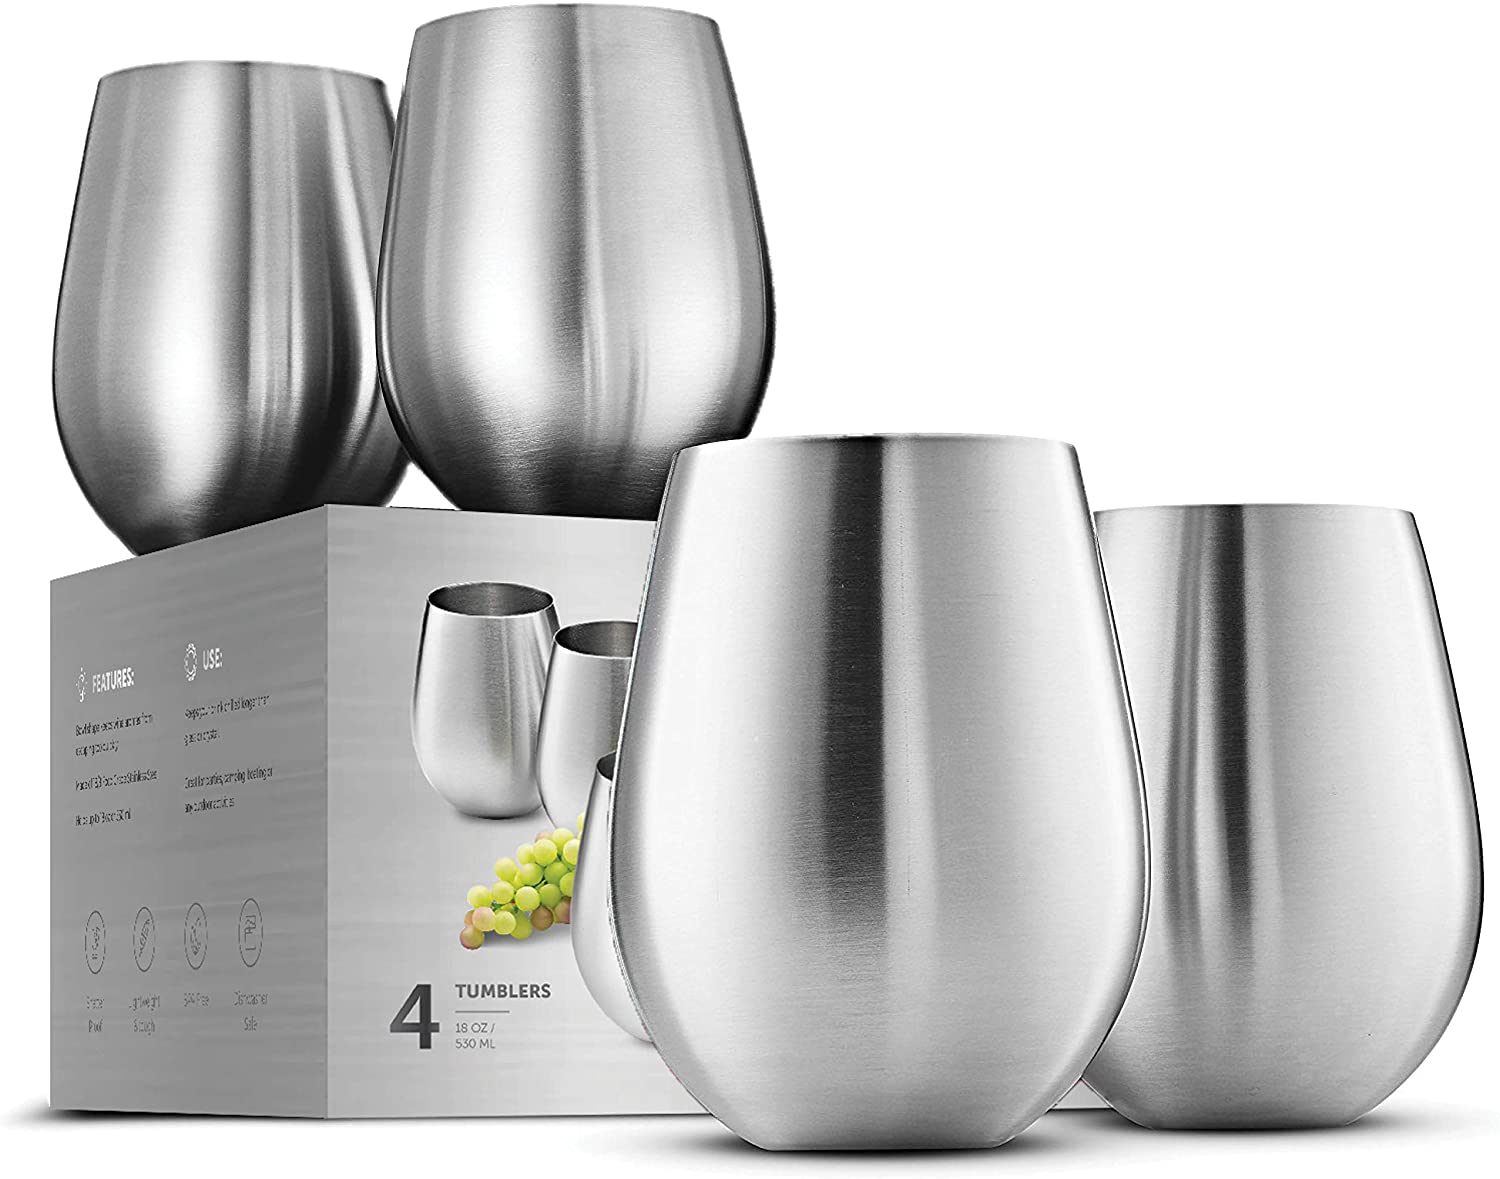 Stainless Steel Stemless Wine Glasses Home Kitchen Camping Drinkware Tumbler